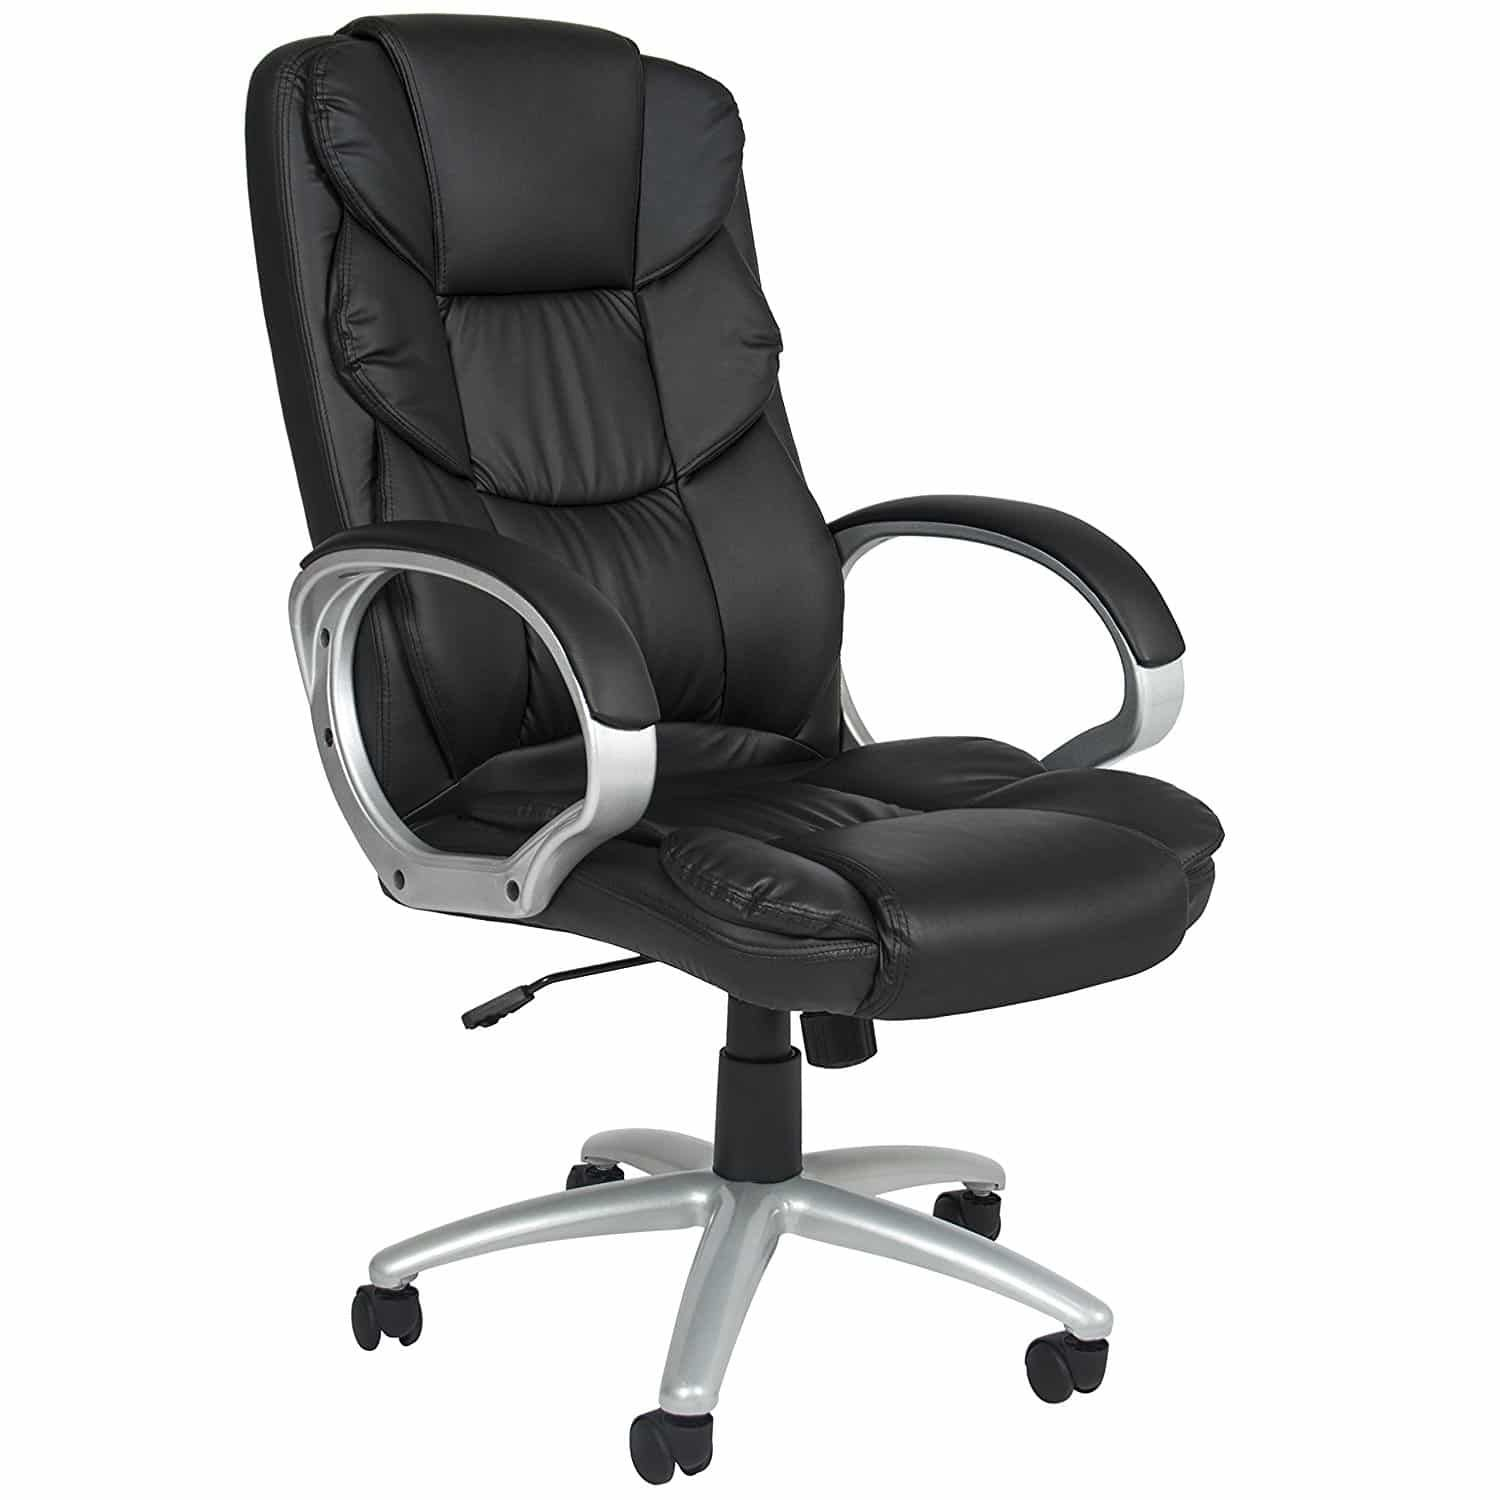 Chairs Comfortable Top 10 Most Comfortable Office Chairs In 2019 Top 10 Most